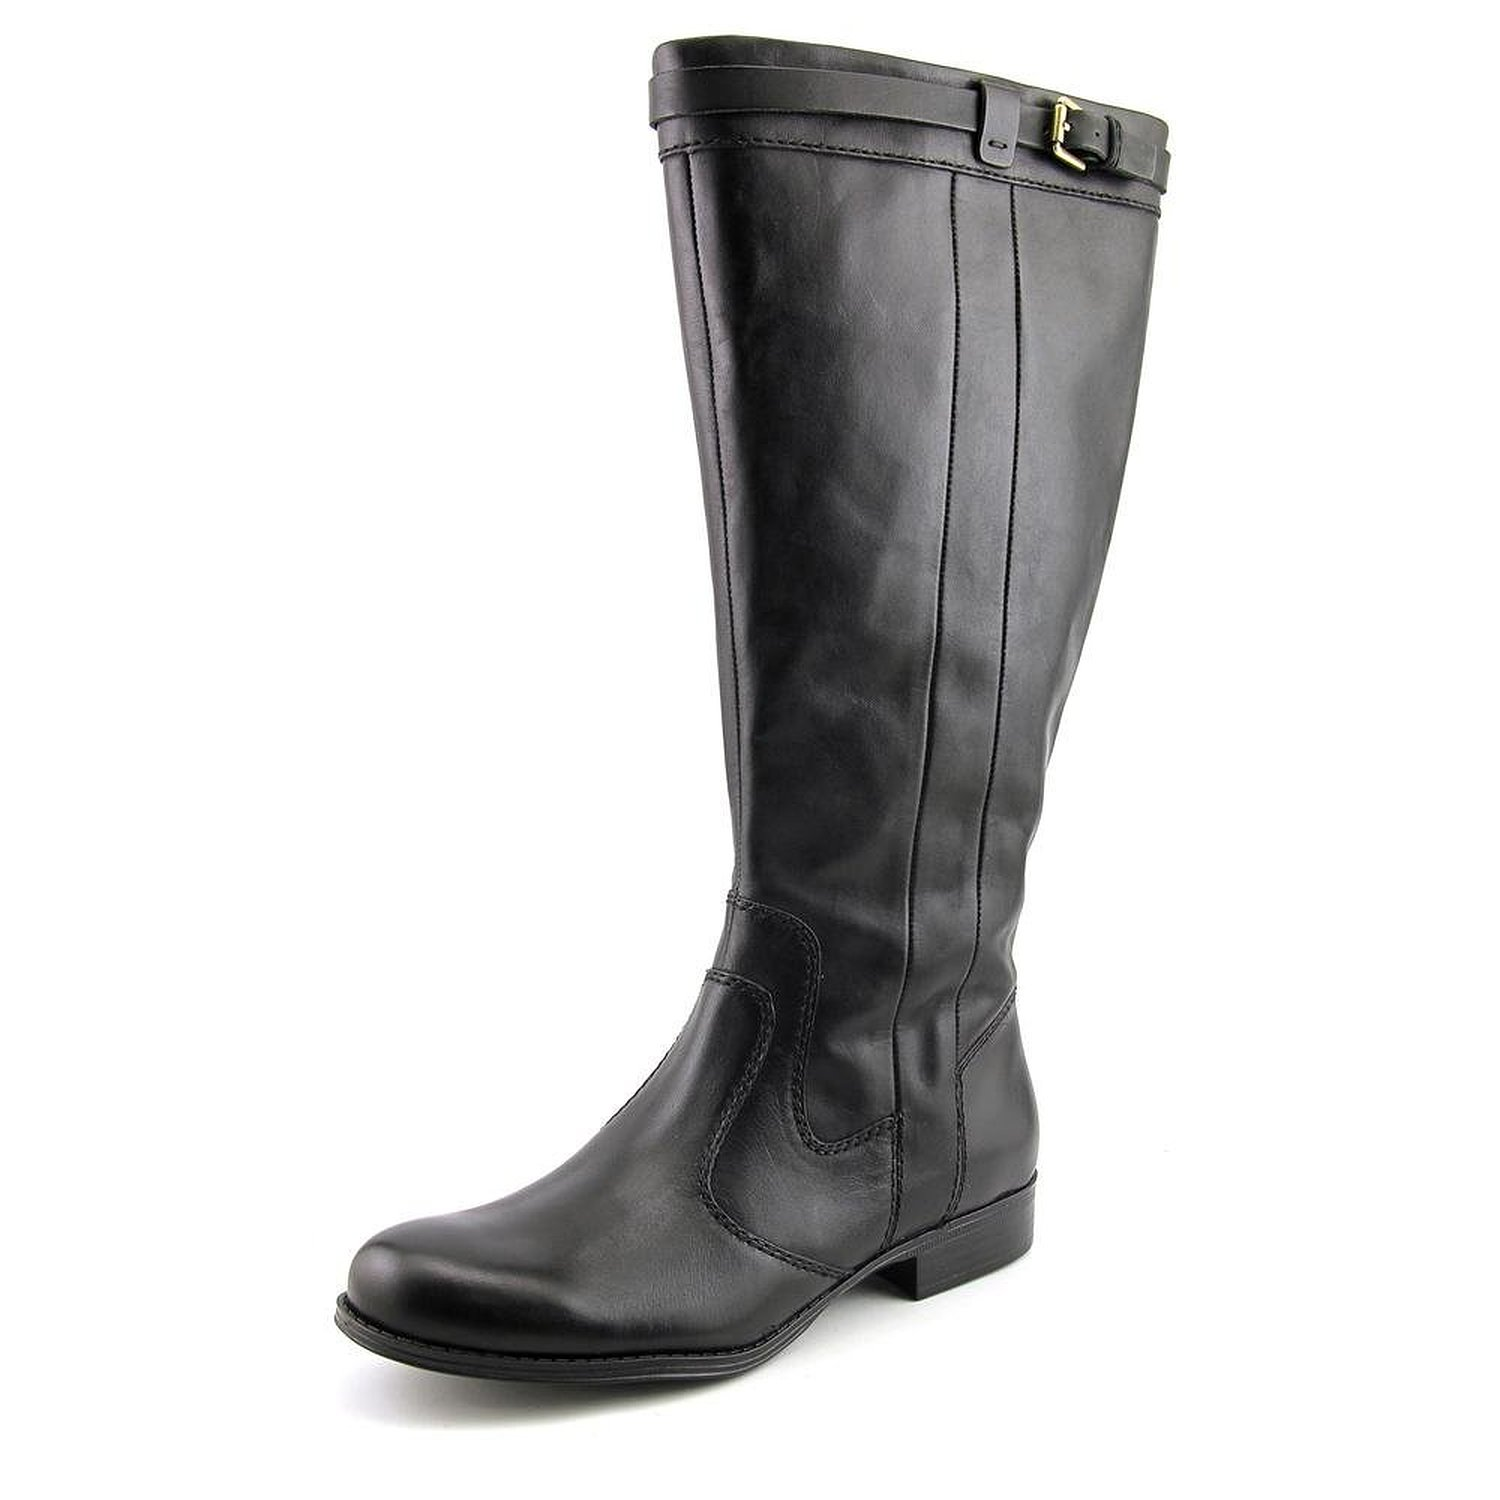 aa2b07aa1c1 Cheap Naturalizer Boots Wide, find Naturalizer Boots Wide deals on ...